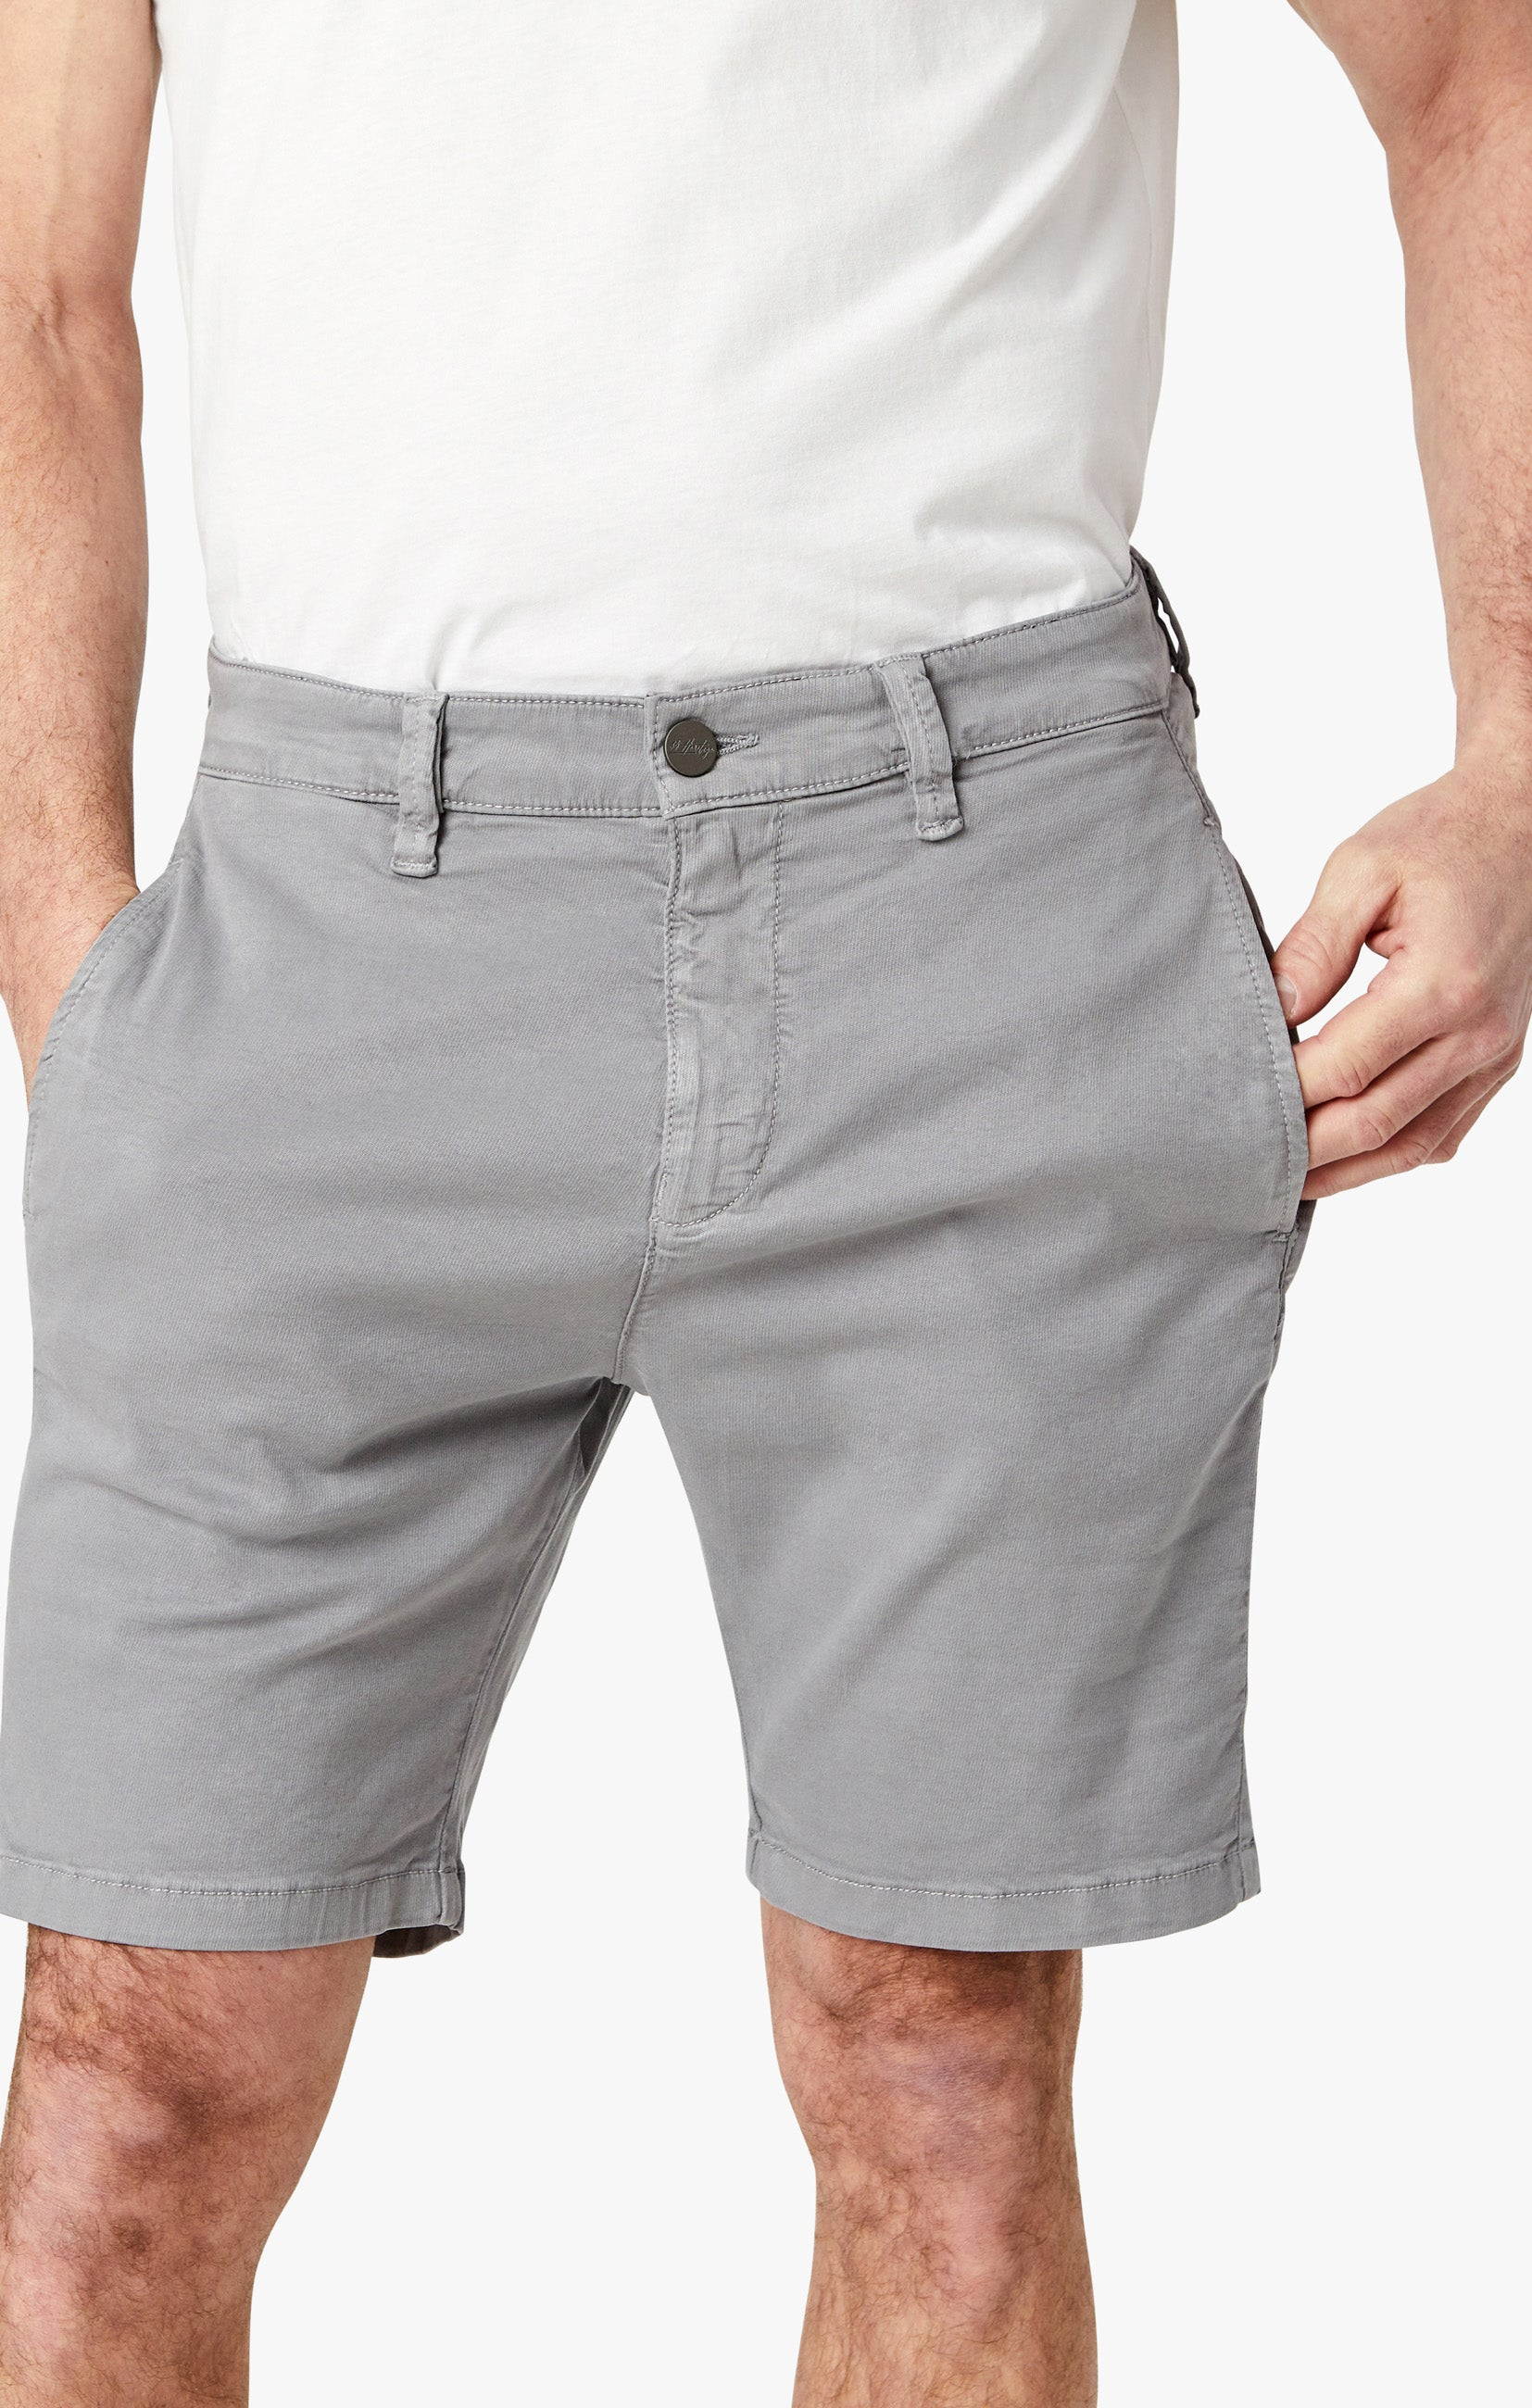 Nevada Shorts In Griffin Soft Touch Image 9